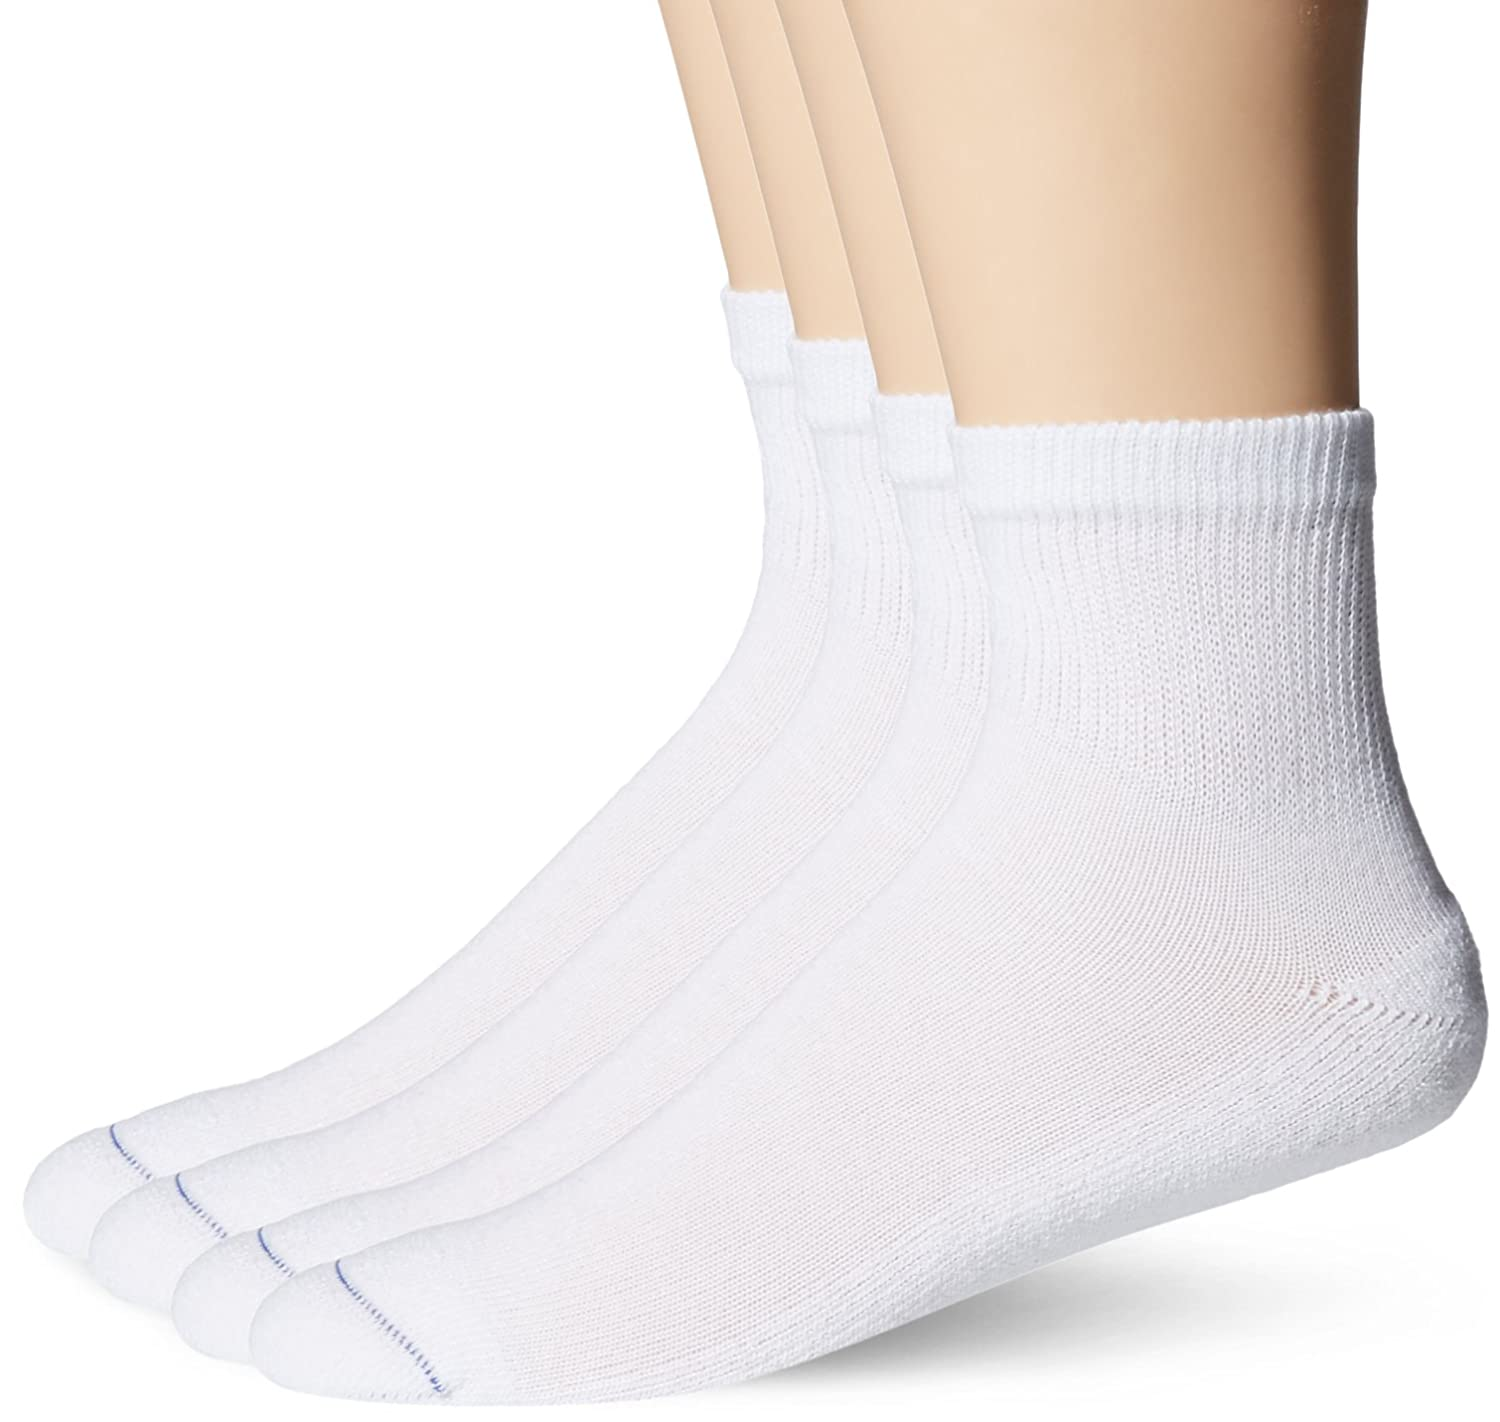 Dr Scholls Mens Non-Binding Ankle 4 Pack